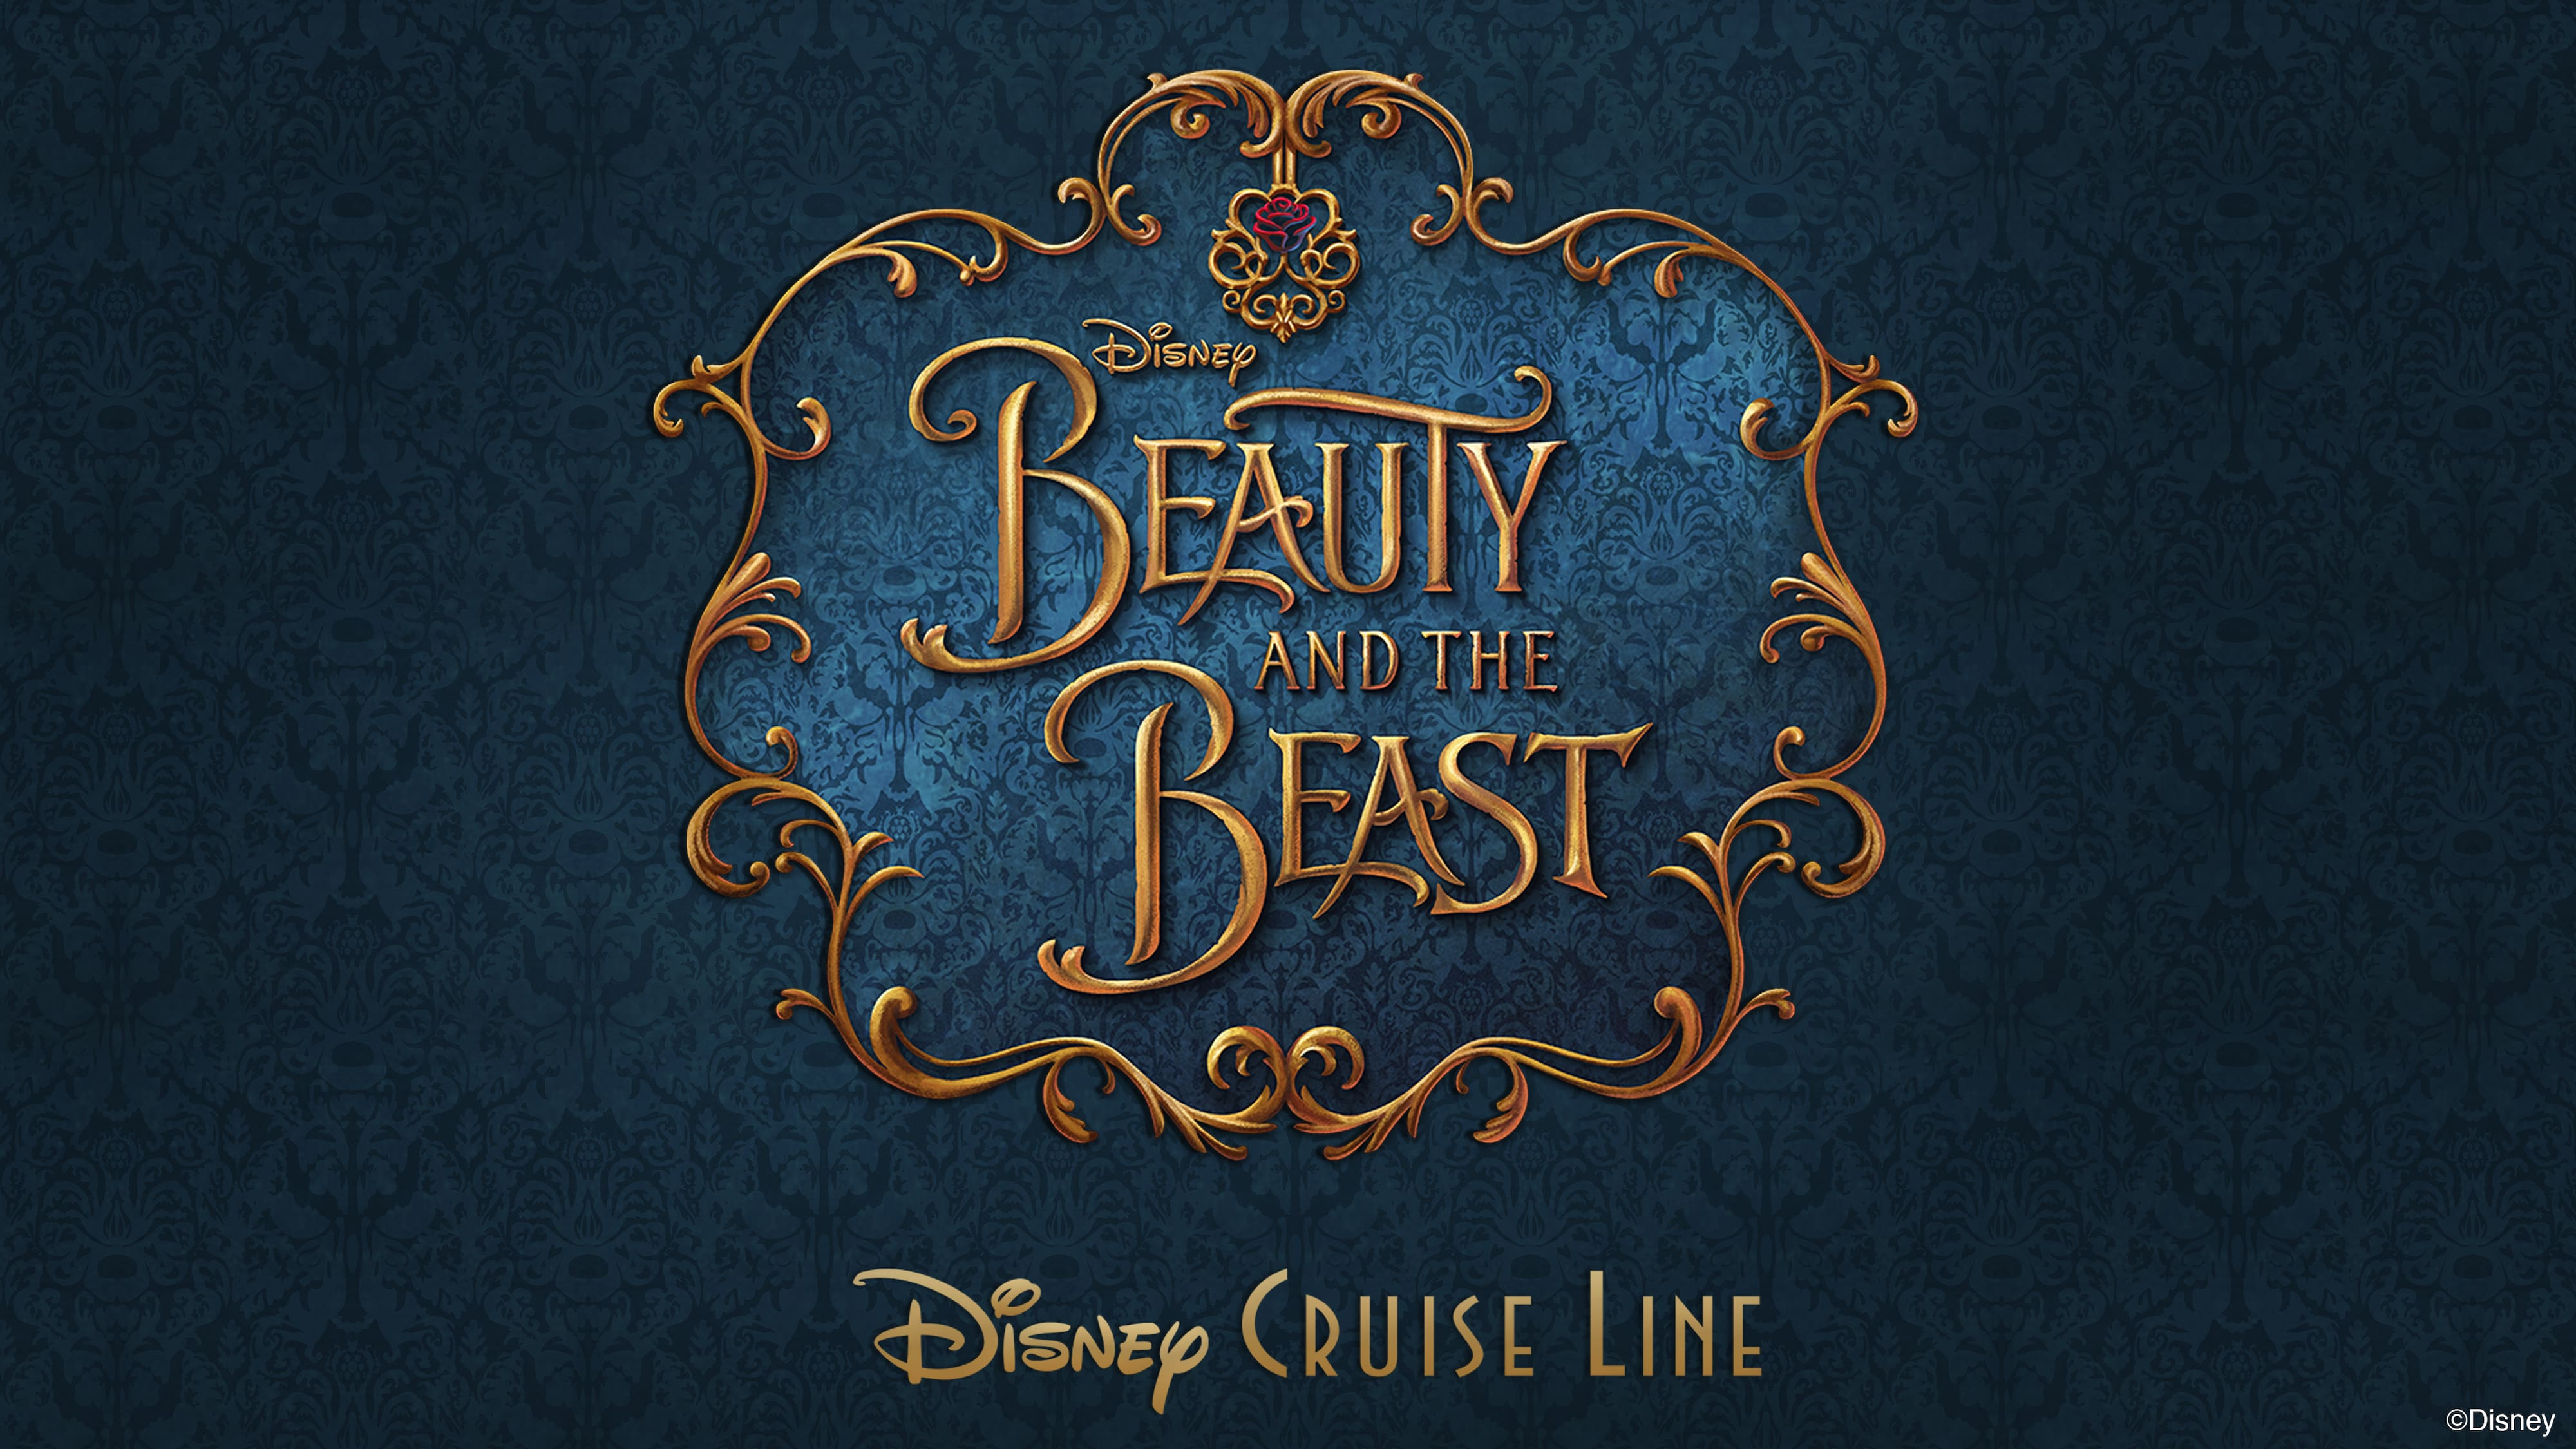 Beauty And The Beast Inspired Wallpaper Disney Cruise Line